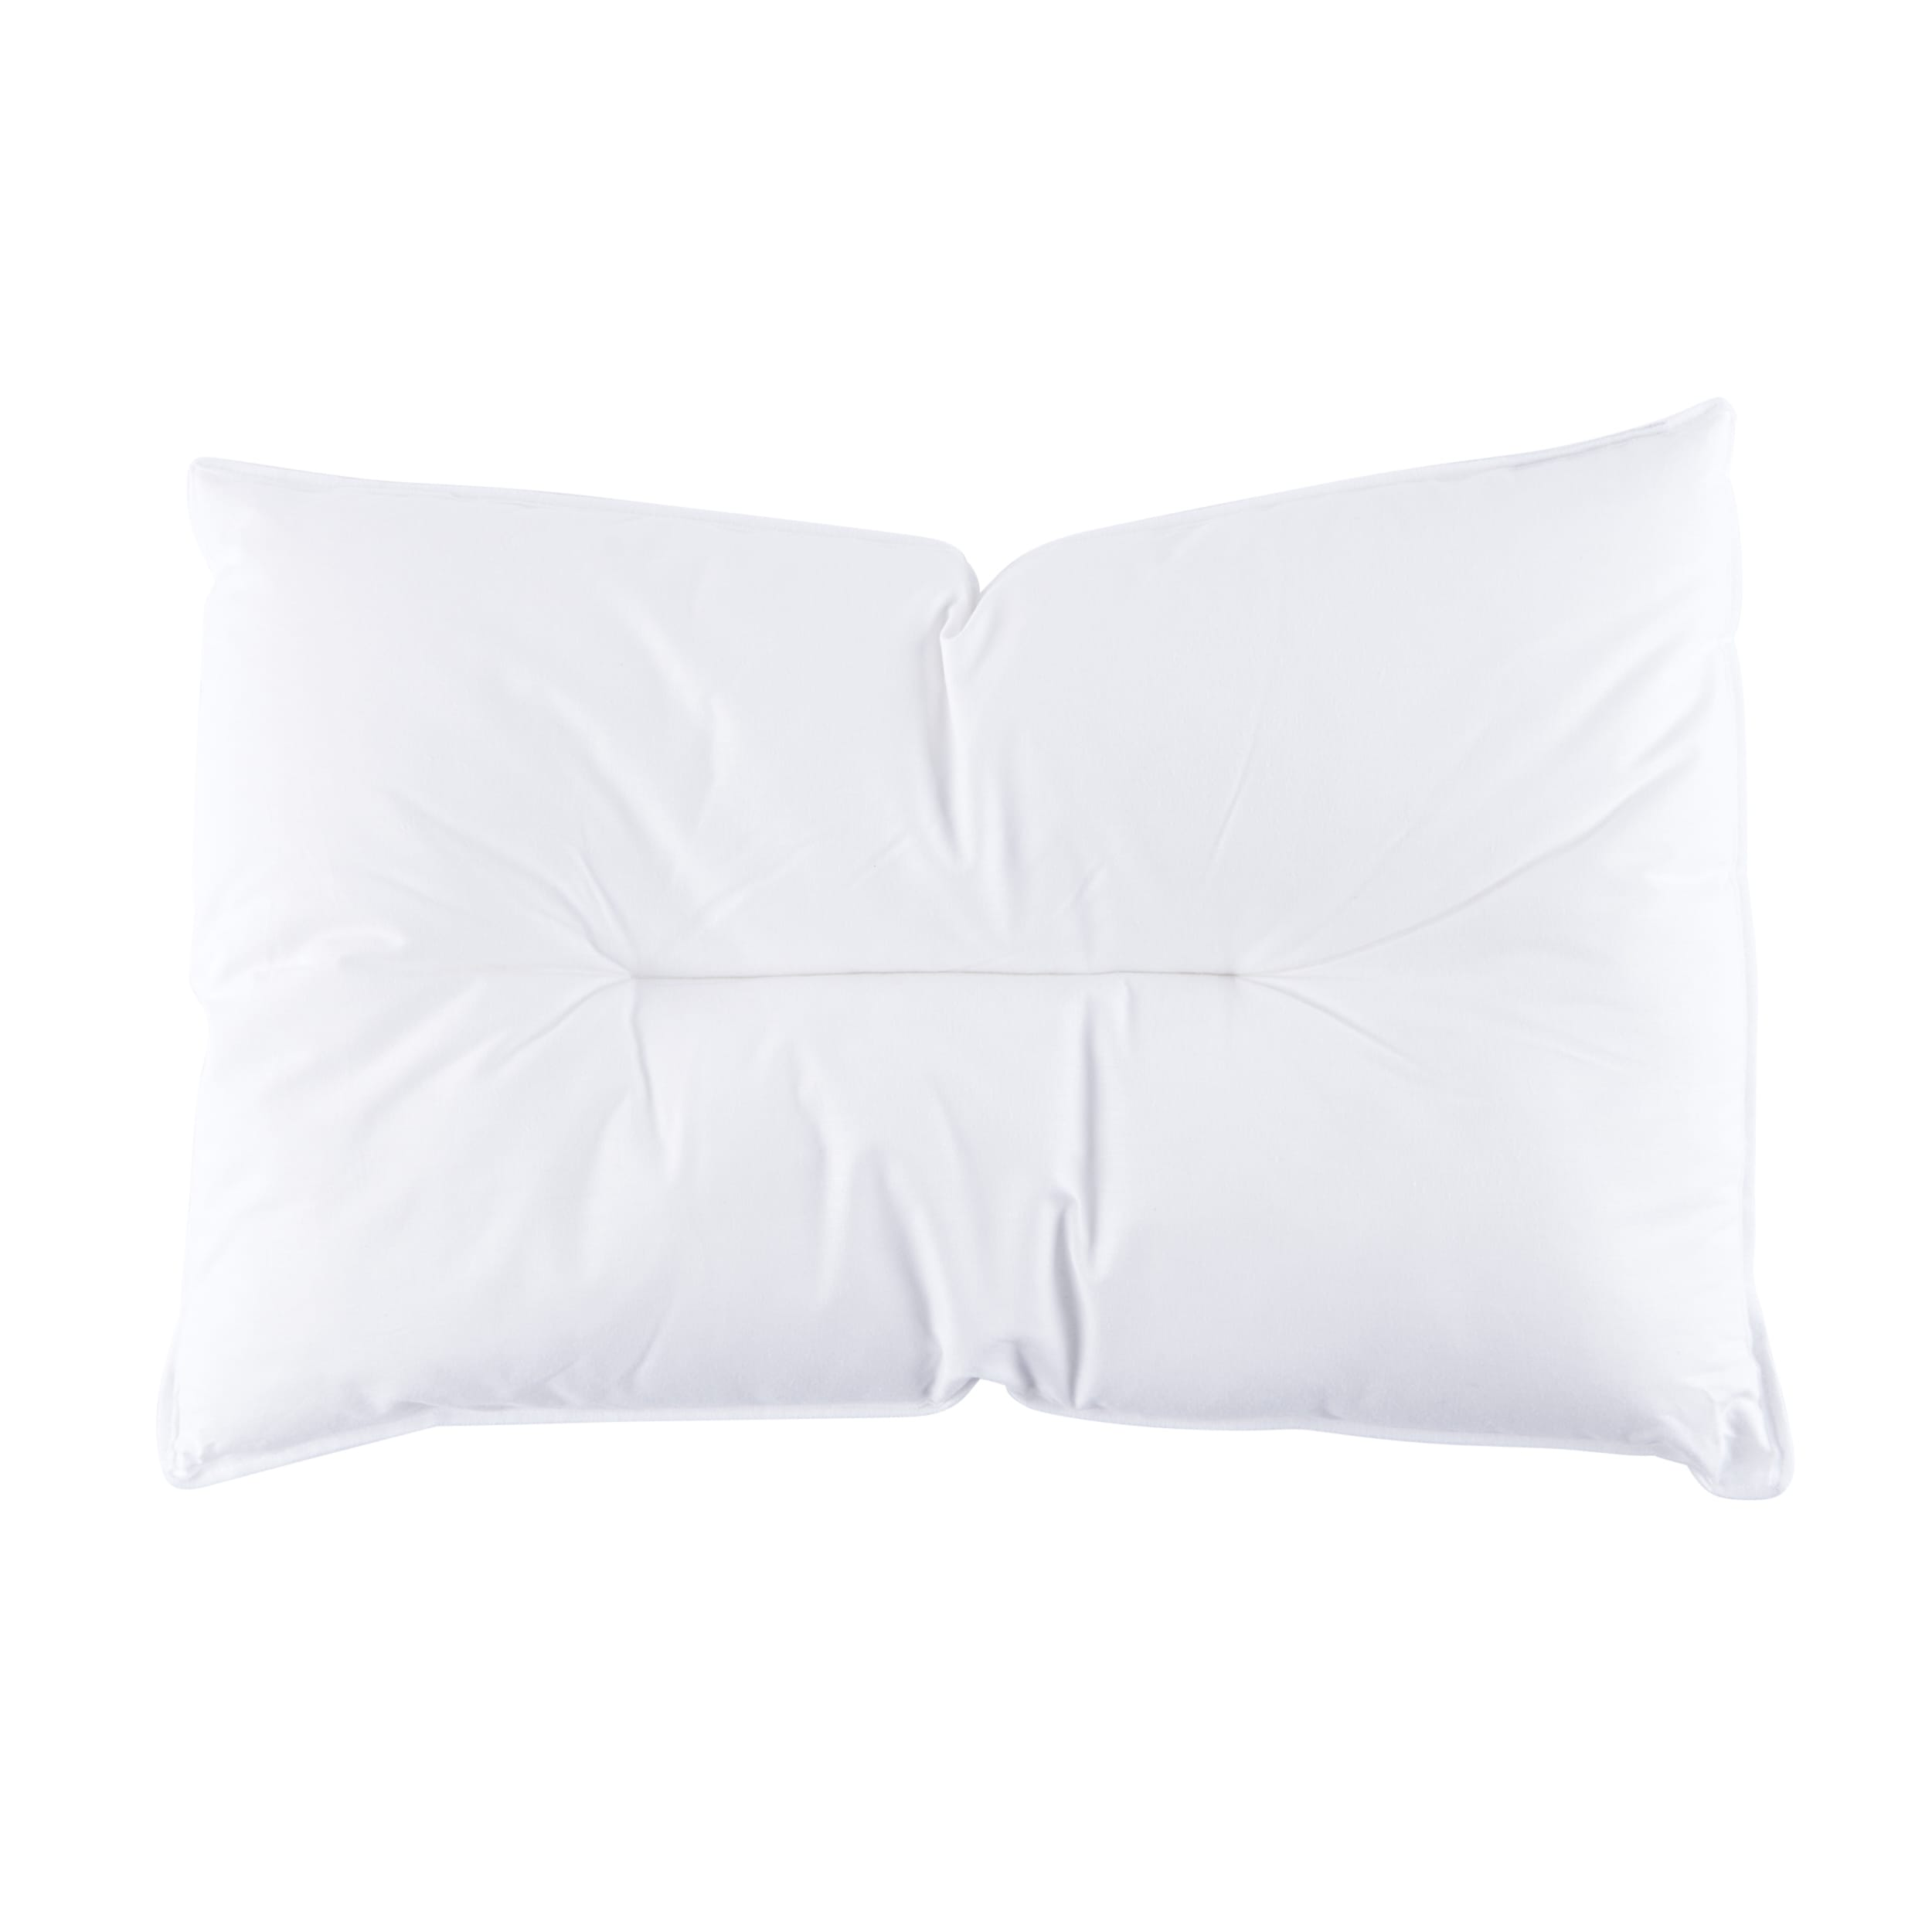 Theophile & Patachou Cotbed Pillow 40 X 60 cm - White